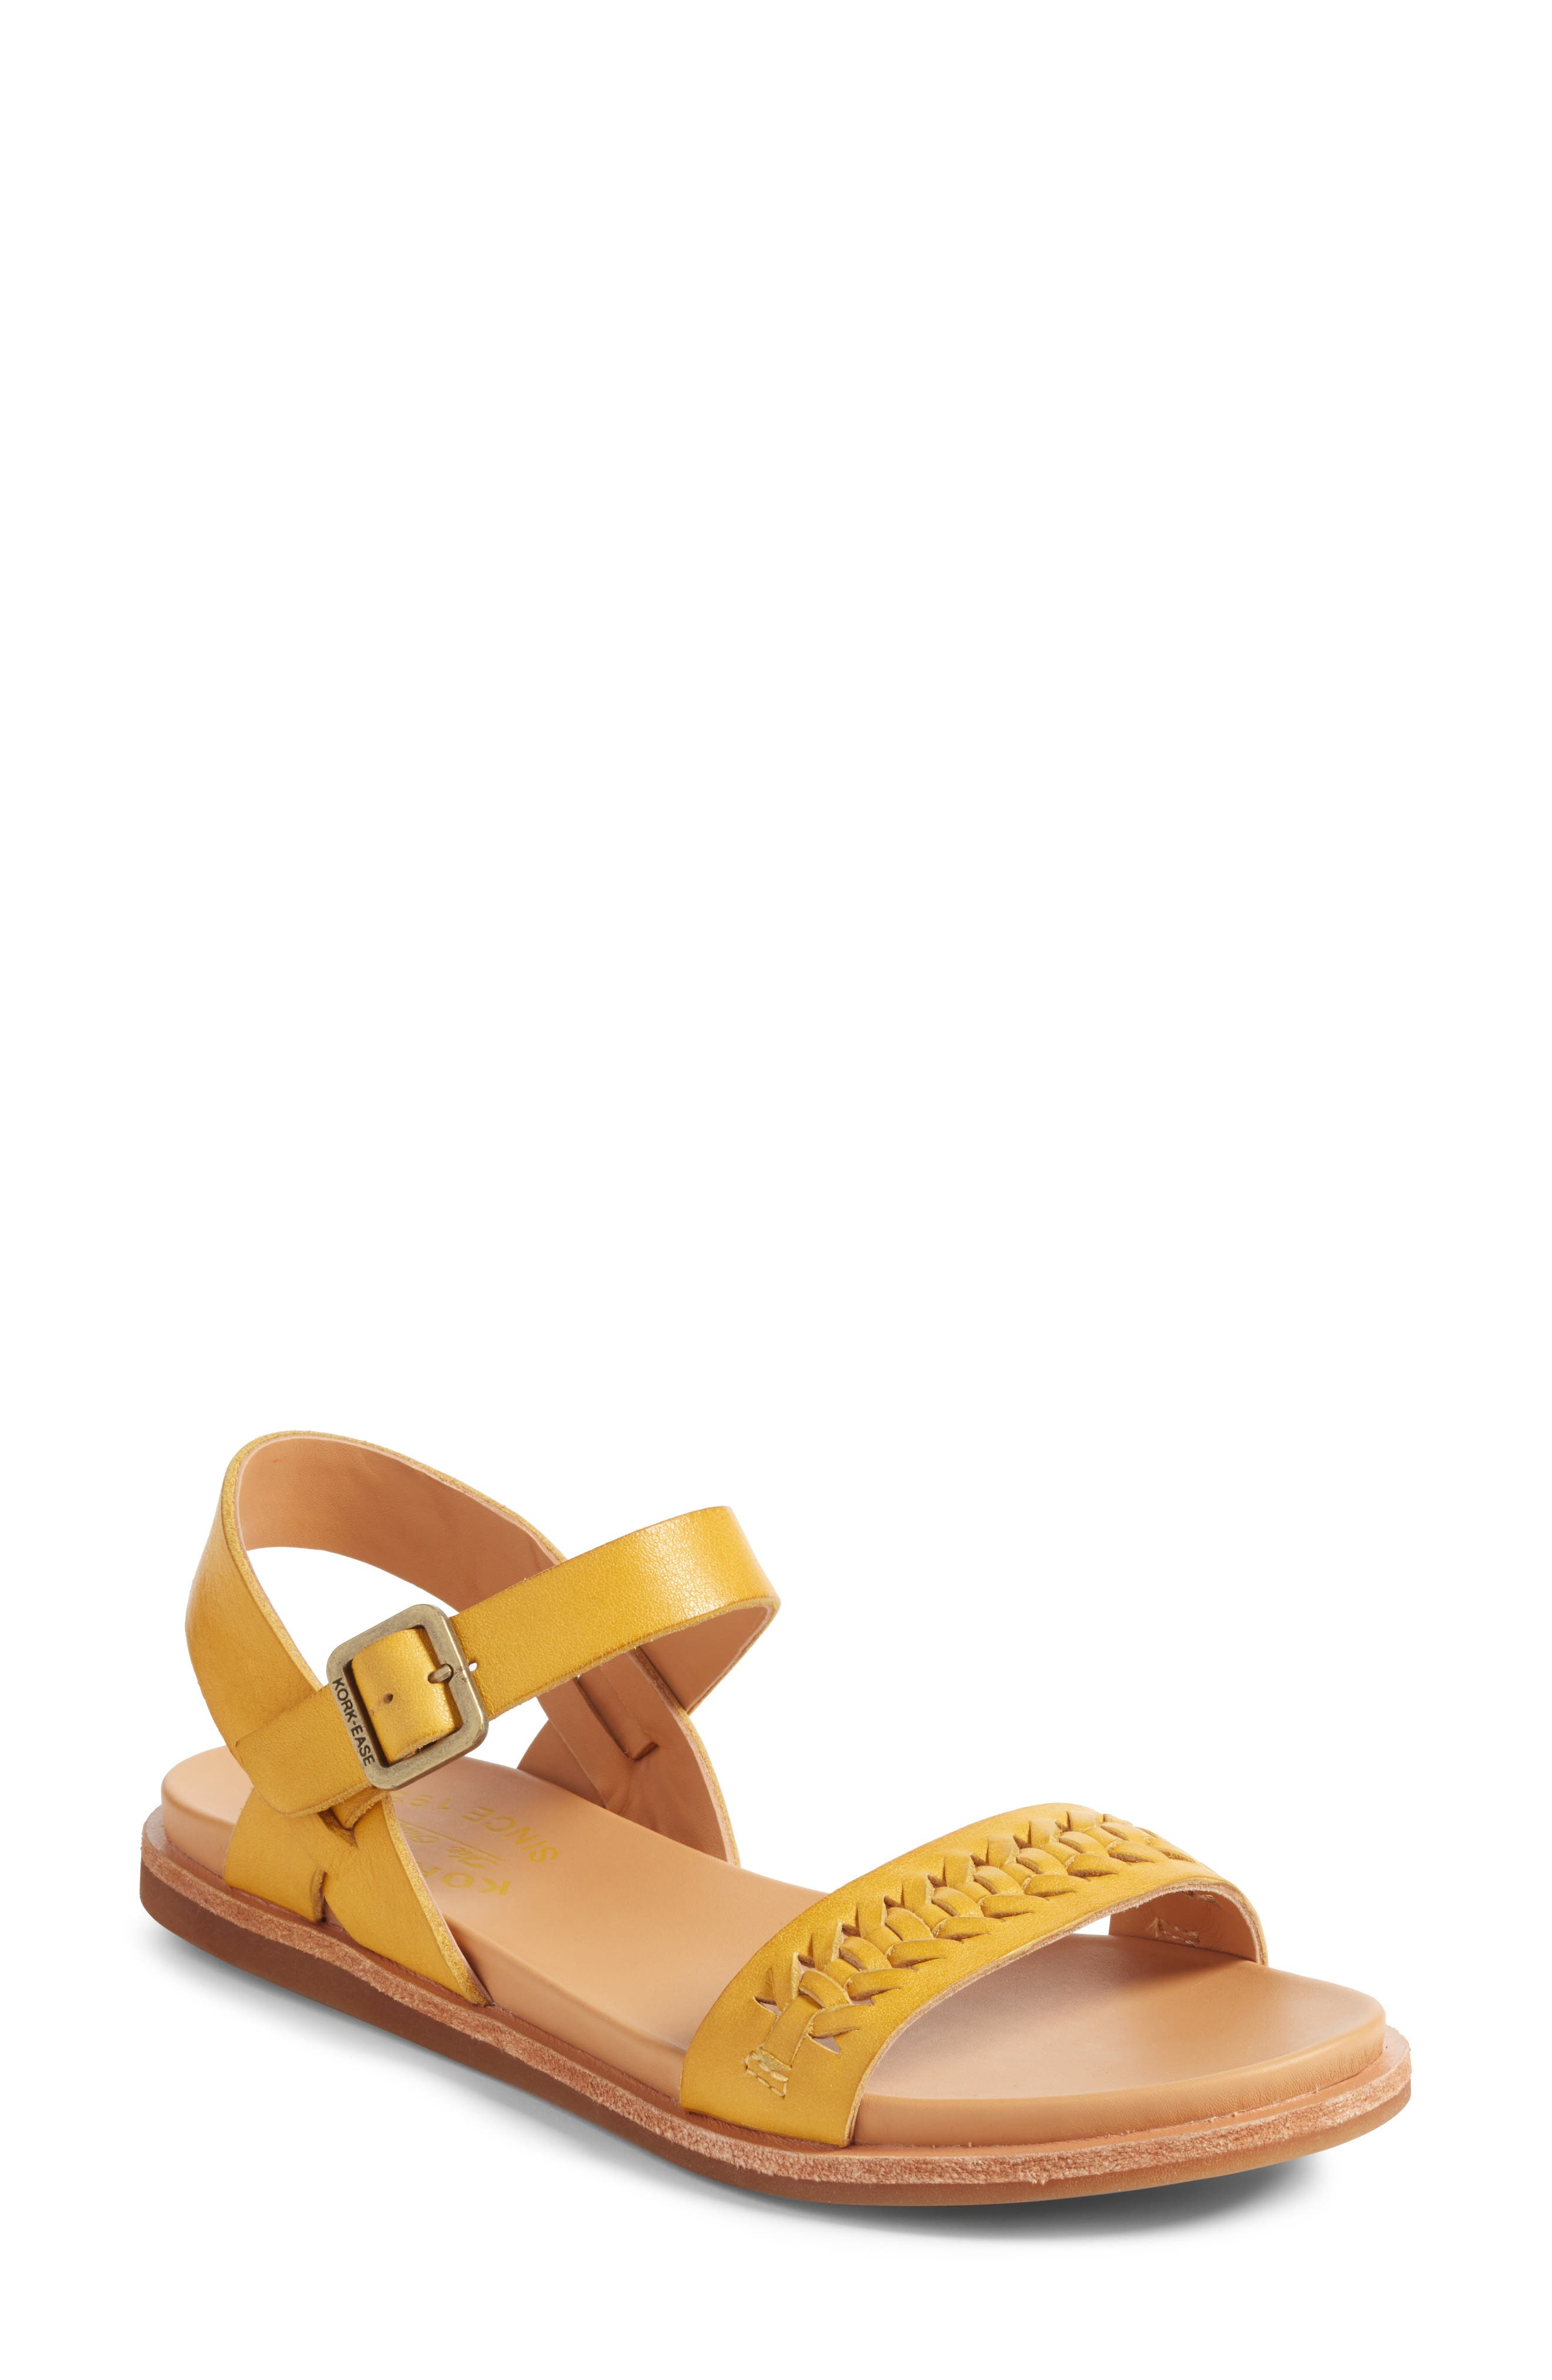 Yucca Braid Sandal,                         Main,                         color, Yellow Leather